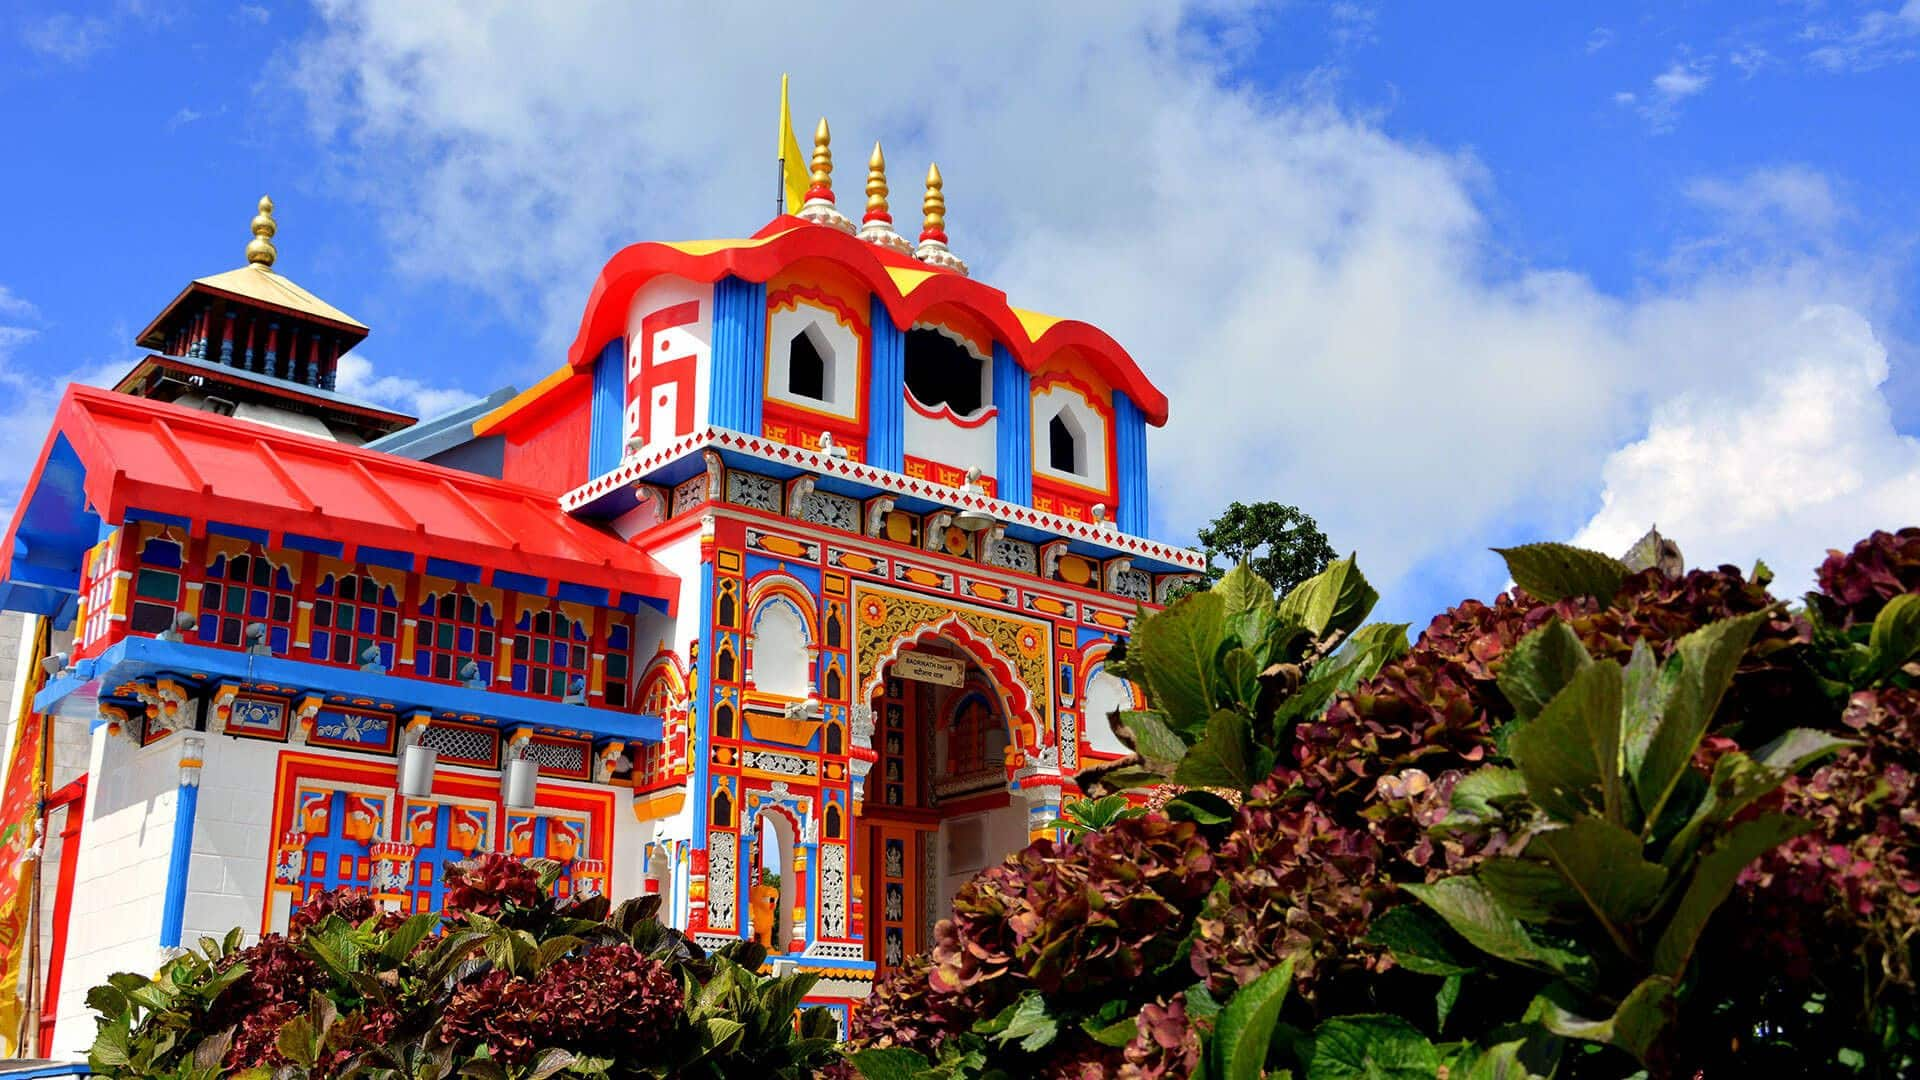 Sikkim Travel Guide To Beating Your Covid Blues - 5 Top Tourist Attractions To Explore